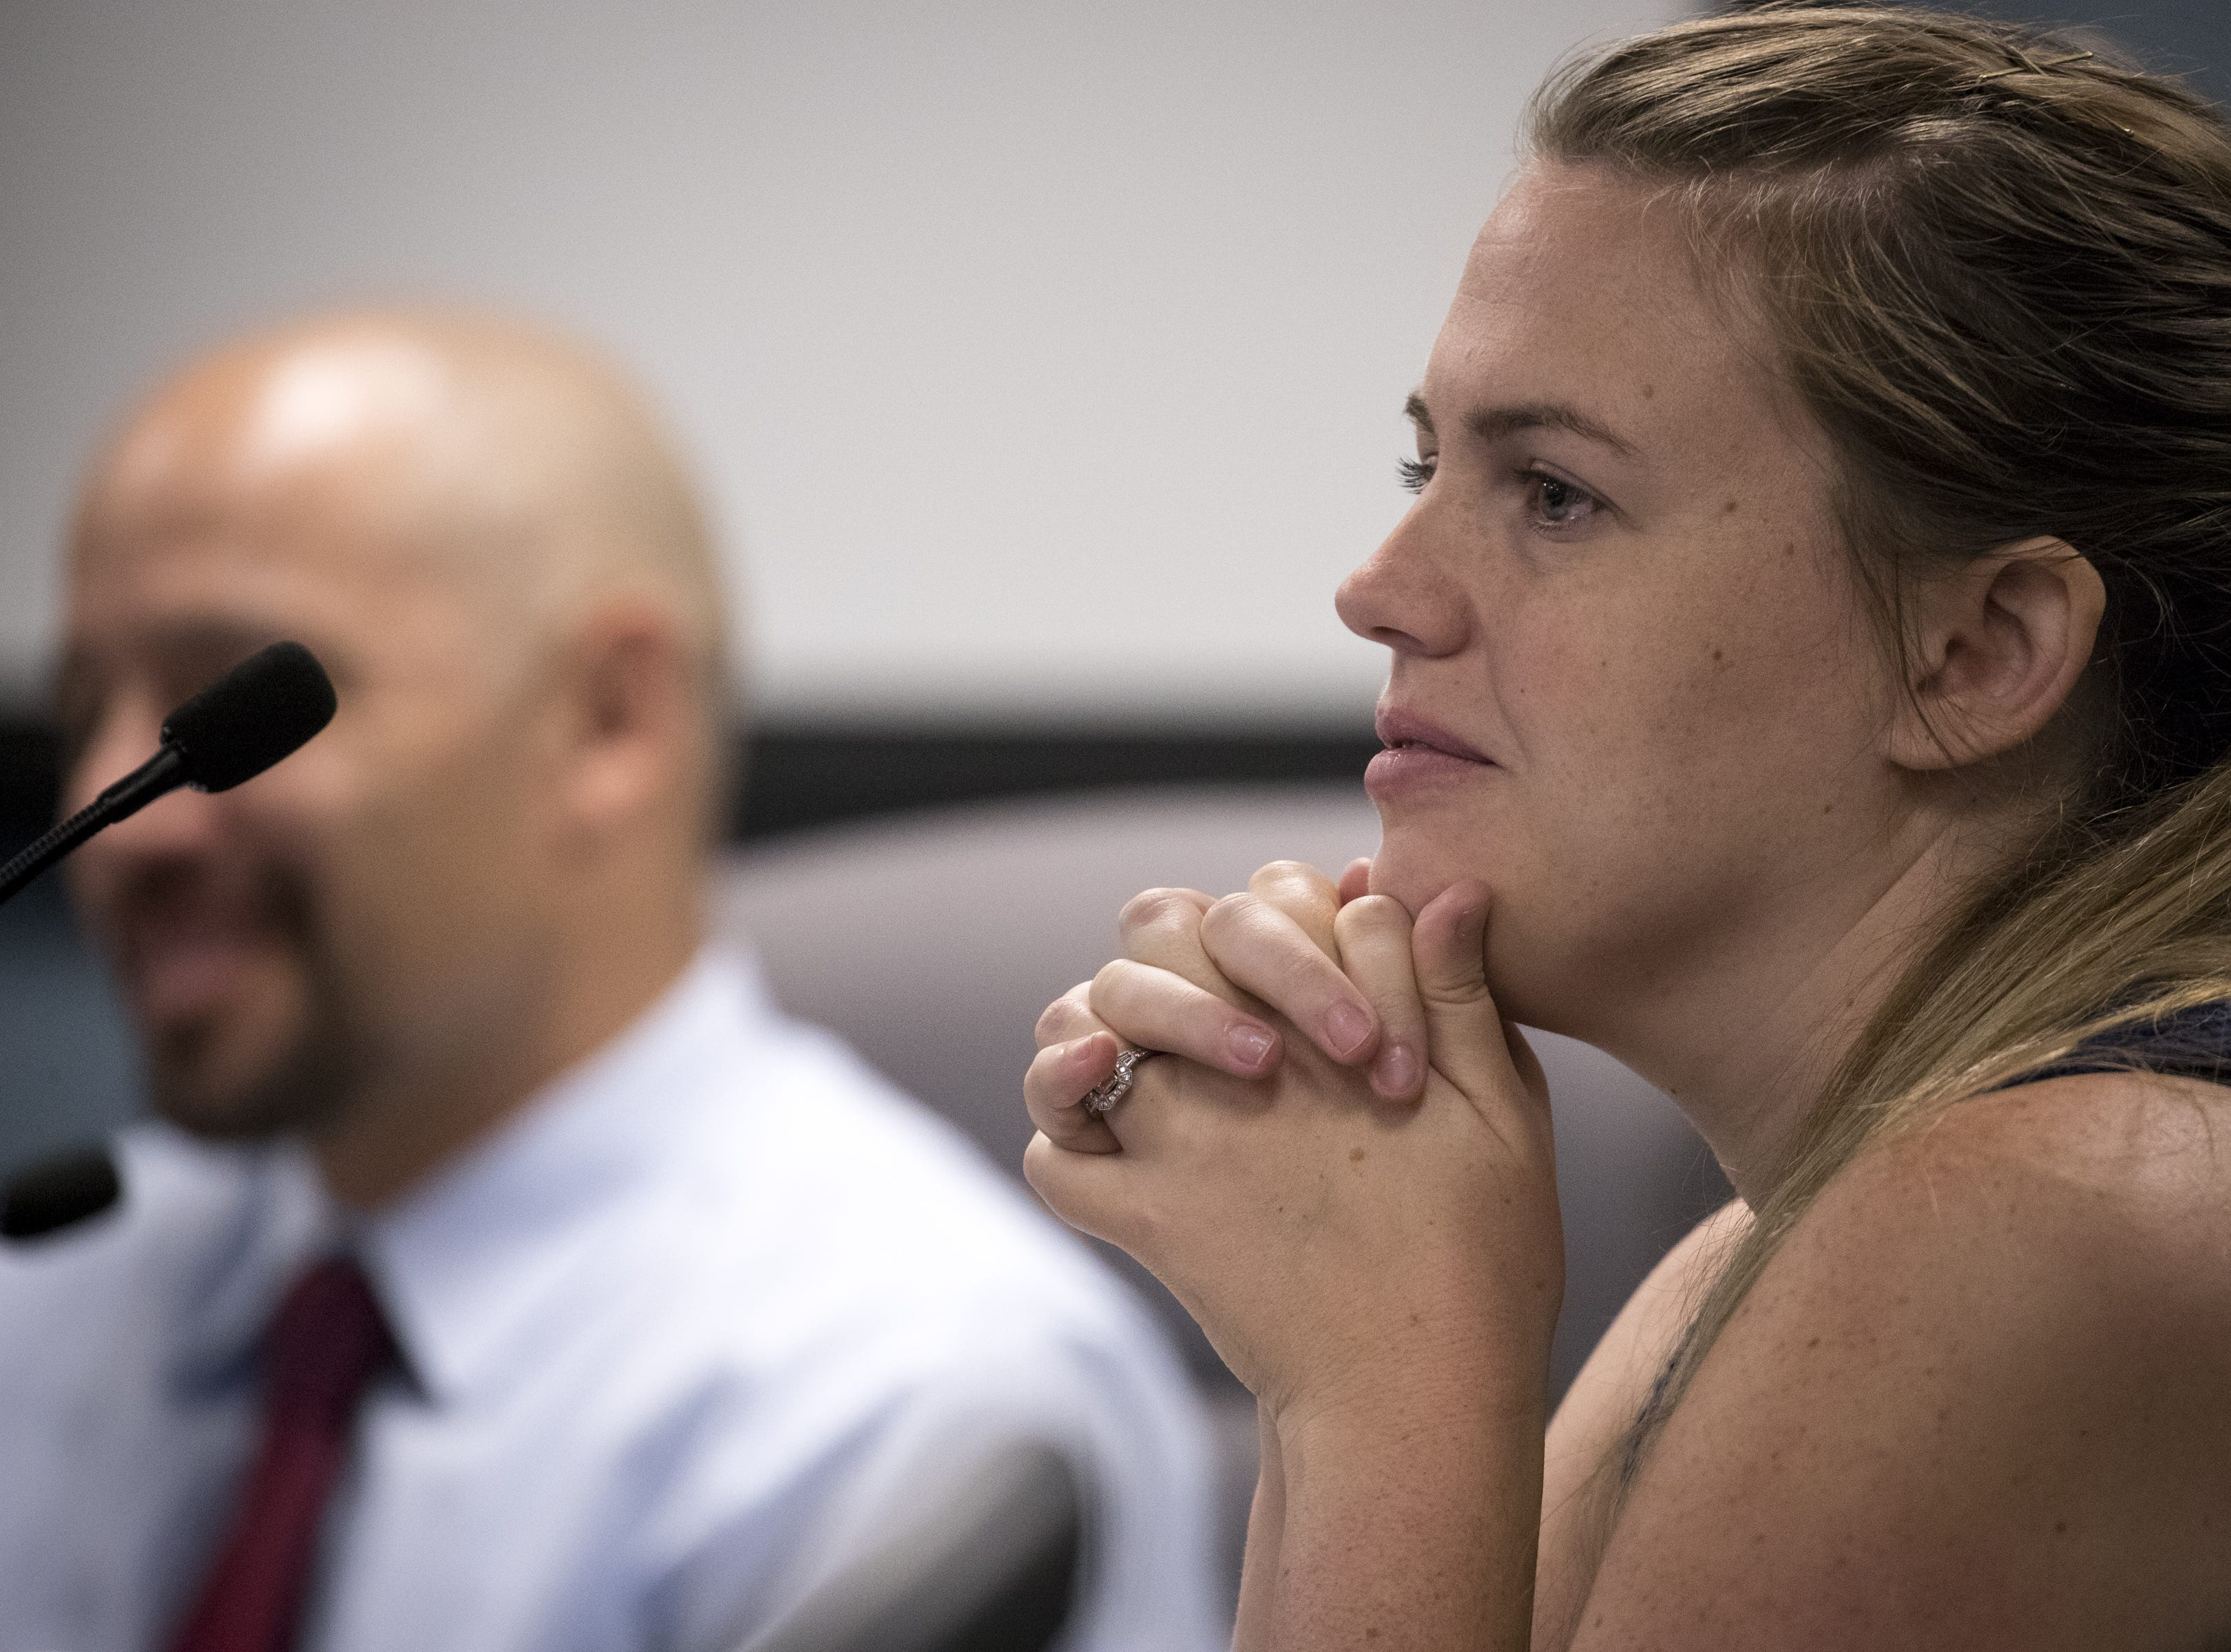 Mary Ellen Lee, a charter school teacher, listens during an Arizona State Board for Charter Schools meeting on Sept. 10, 2018, at the Arizona Department of Education in Phoenix.